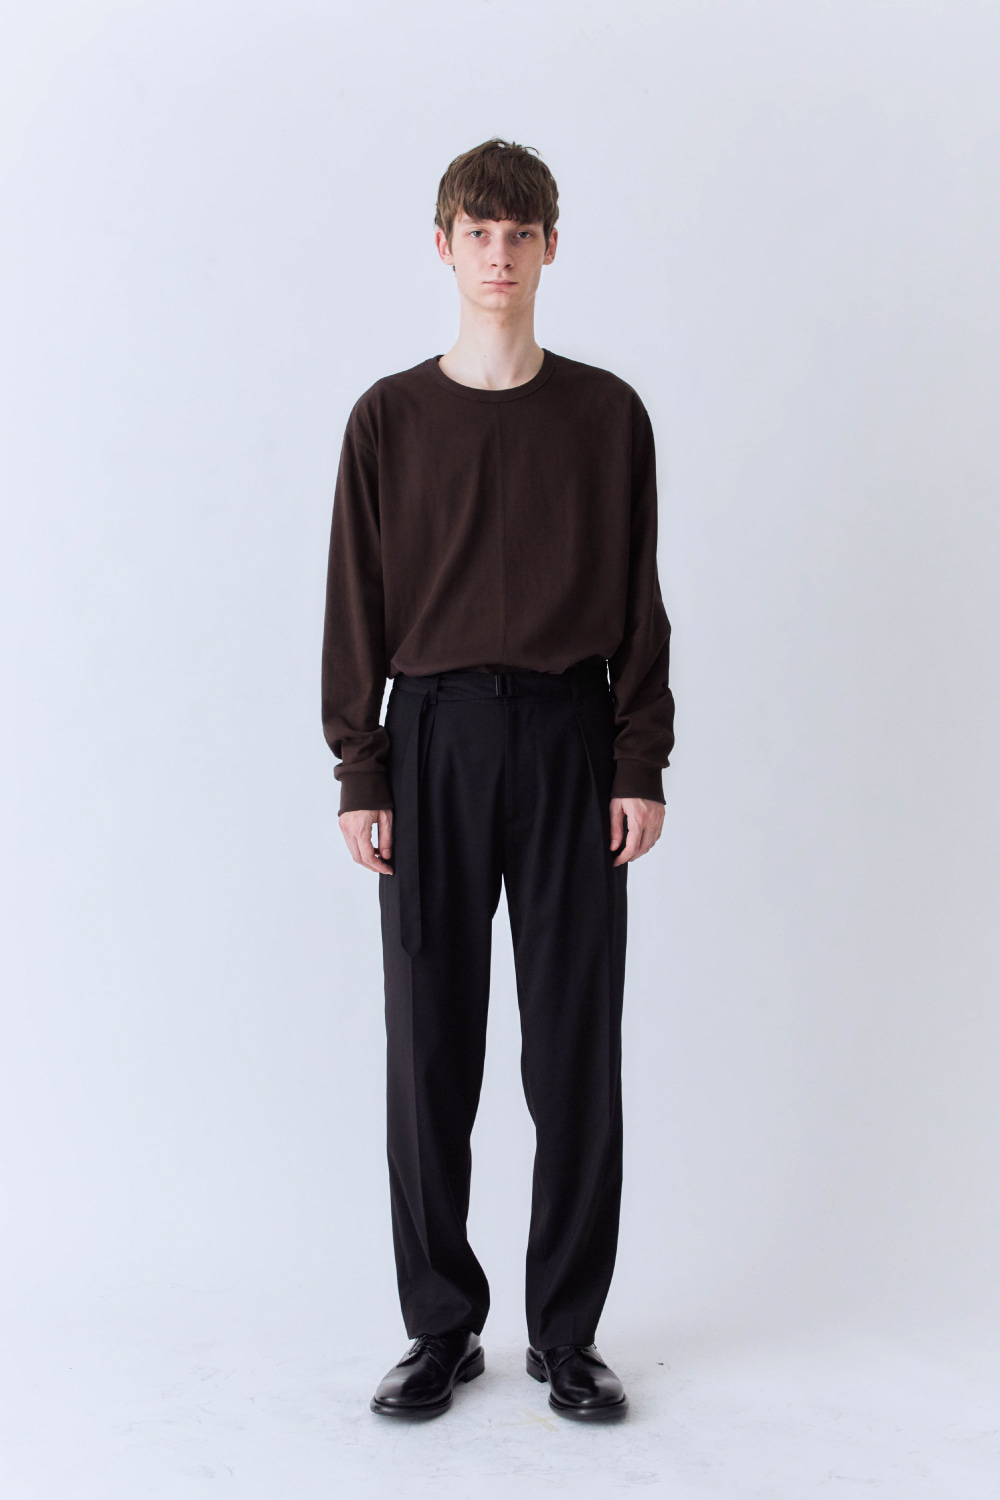 OURSCOPE아워스코프 Two Paneled Long Sleeve (Brown)